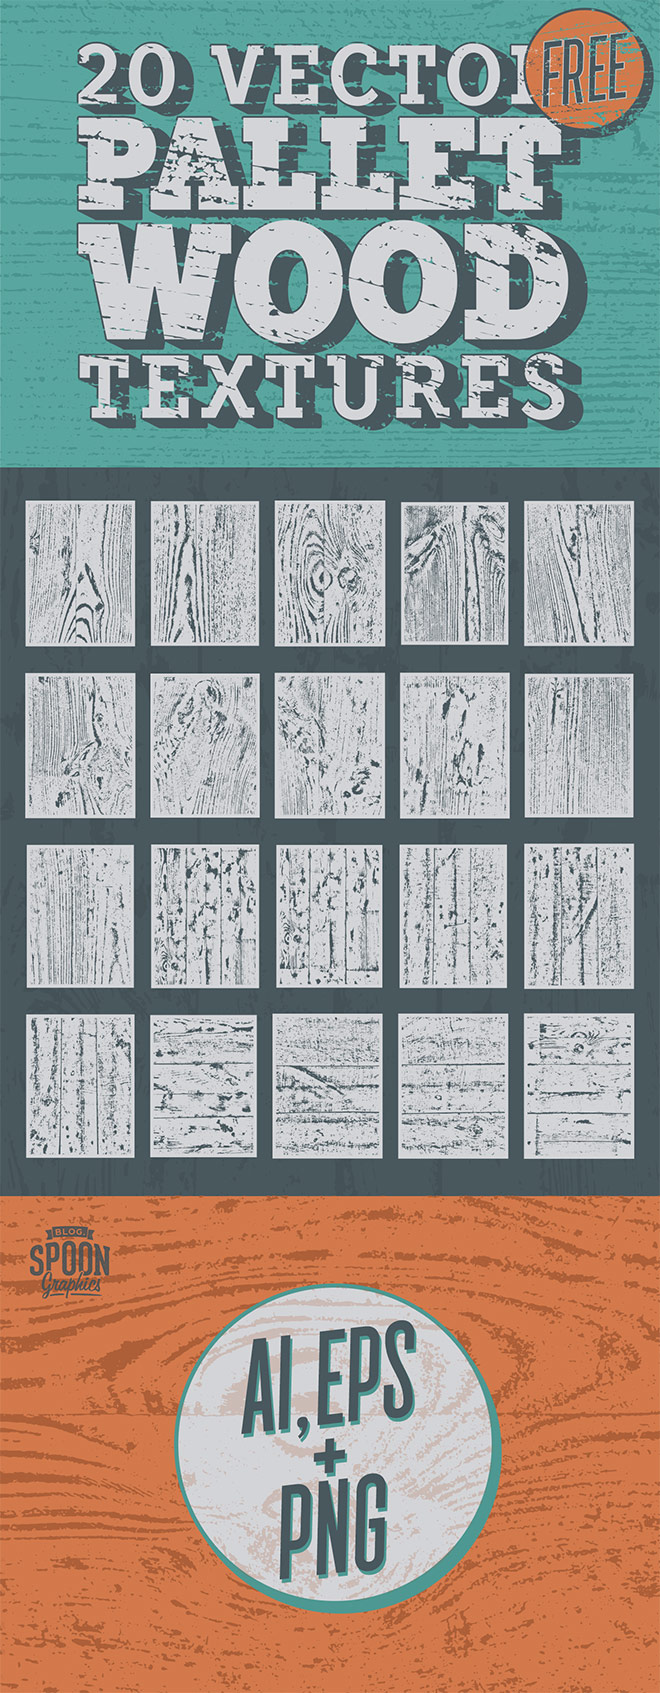 660x1693 20 Free Vector Pallet Wood Textures In Ai, Eps Amp Png Format